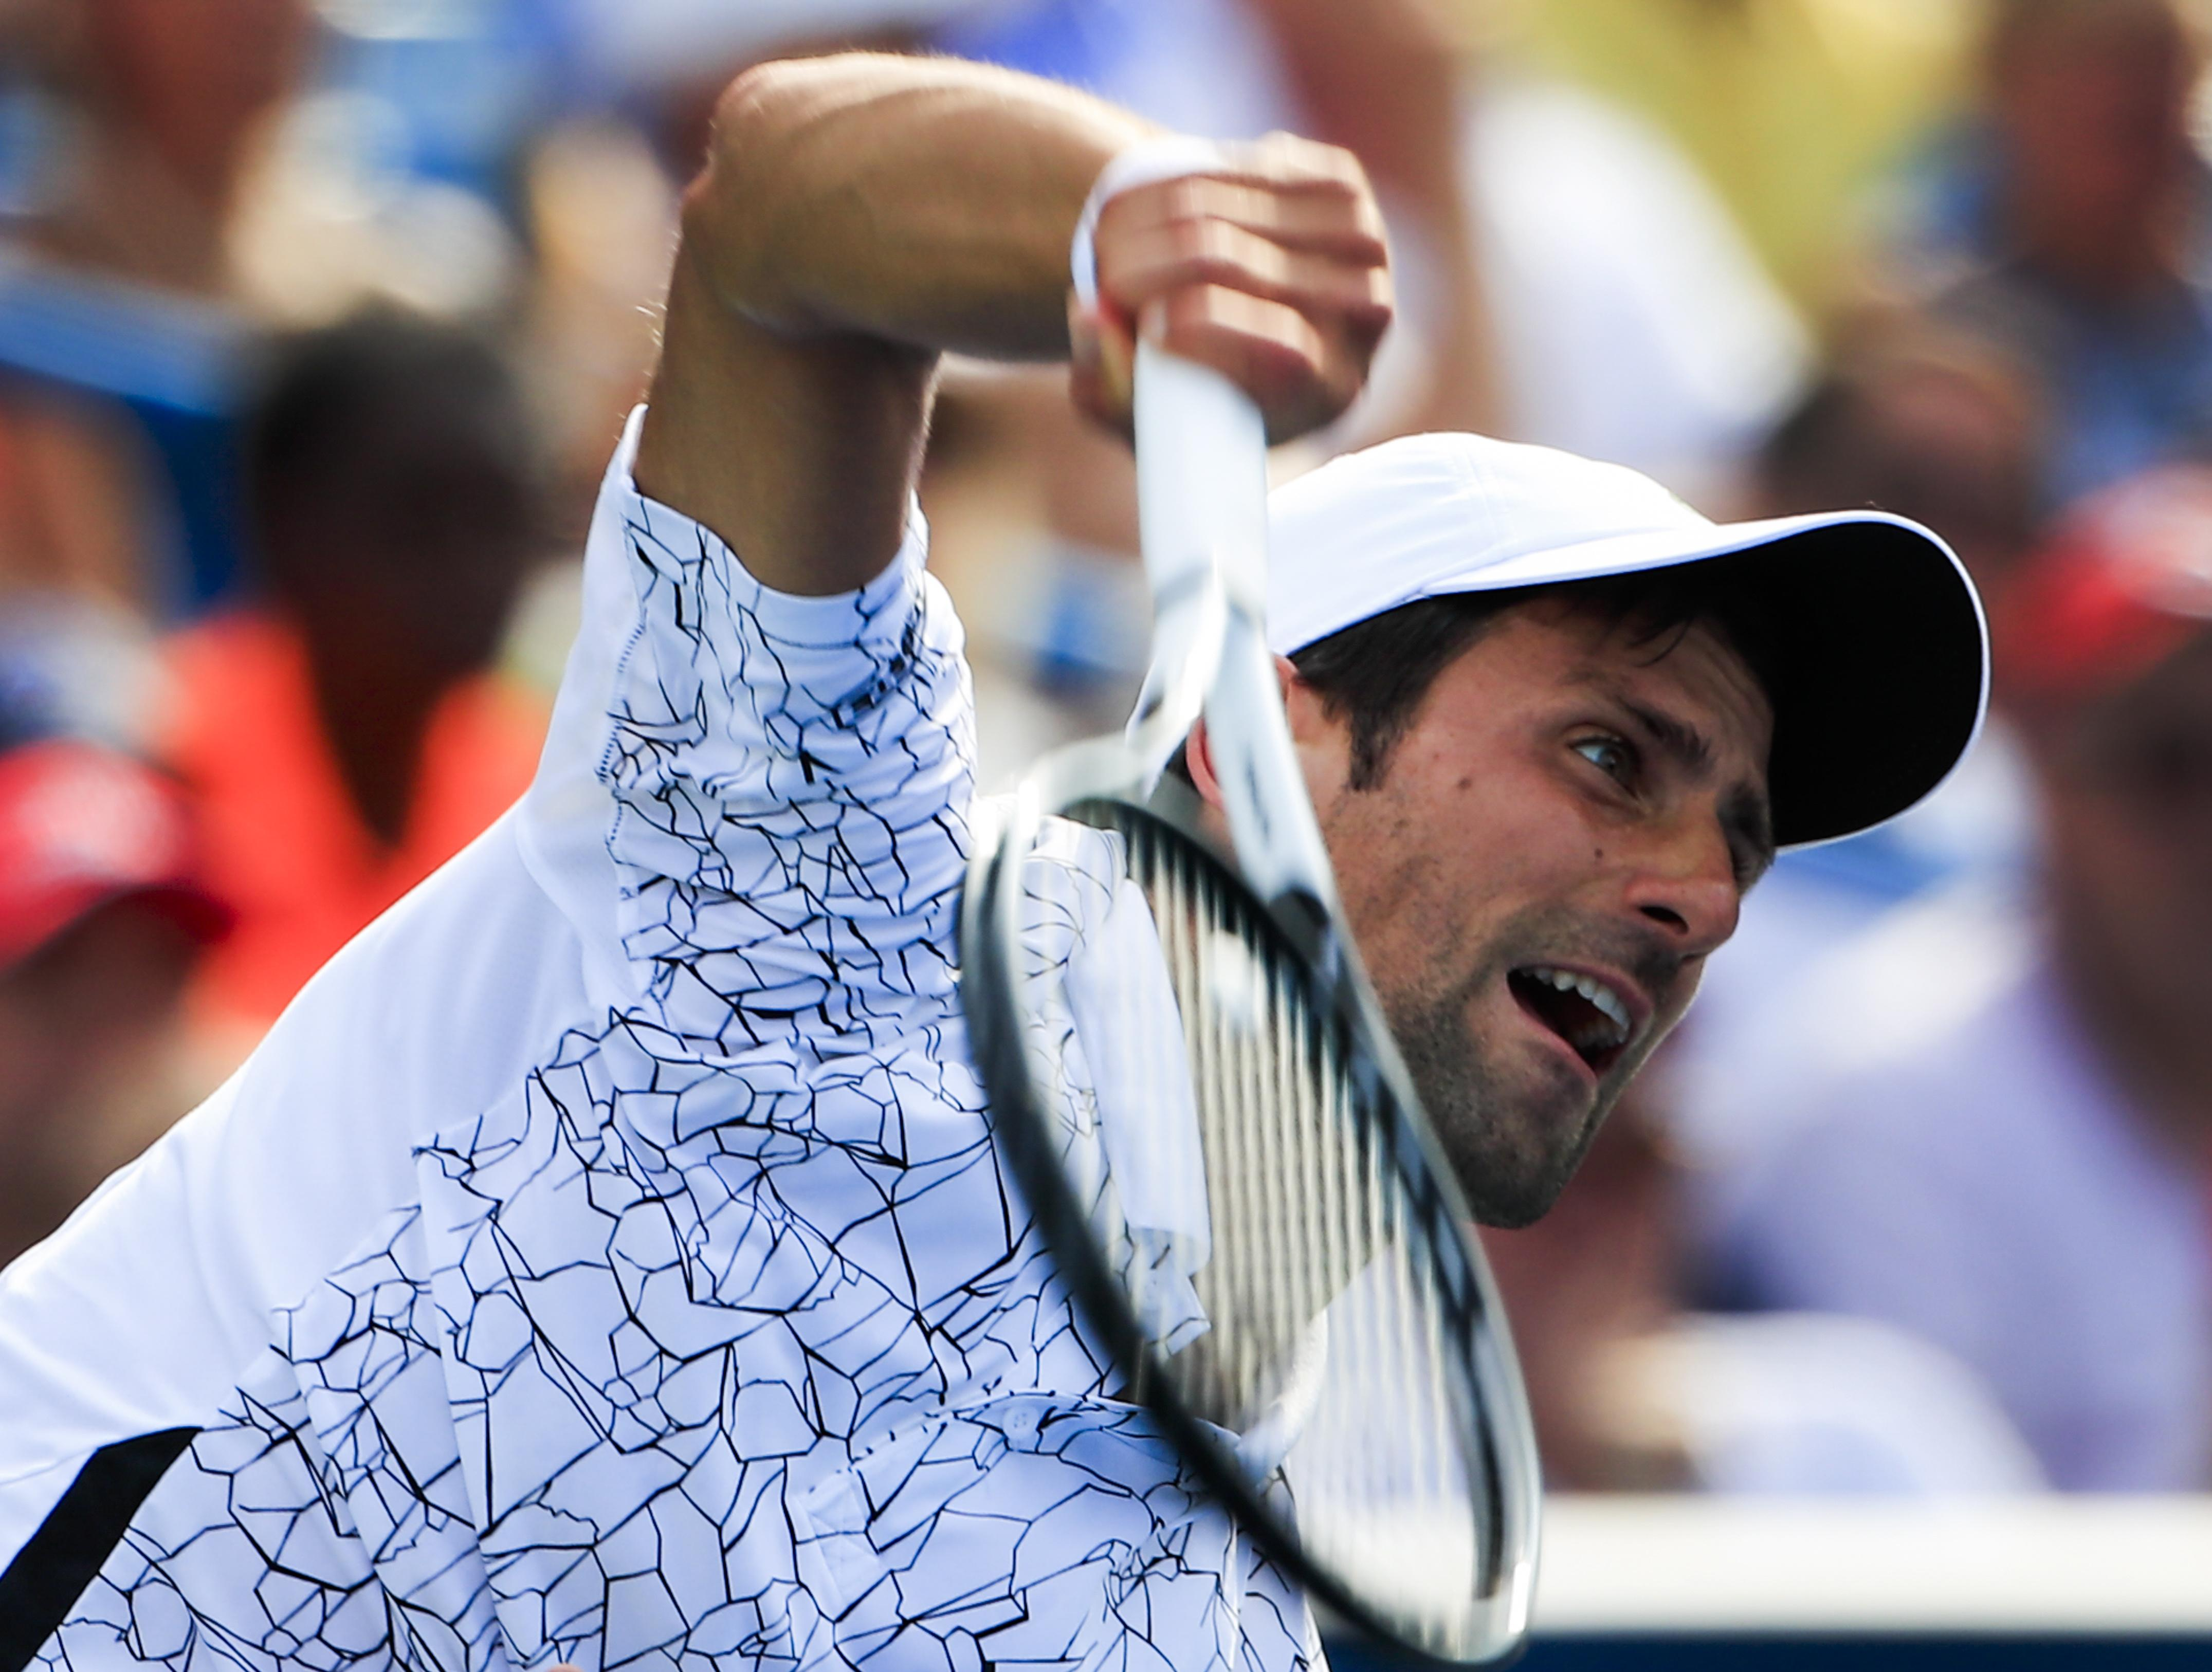 Djokovic gave Federer a lifeline when he doubt faulted early in the second set